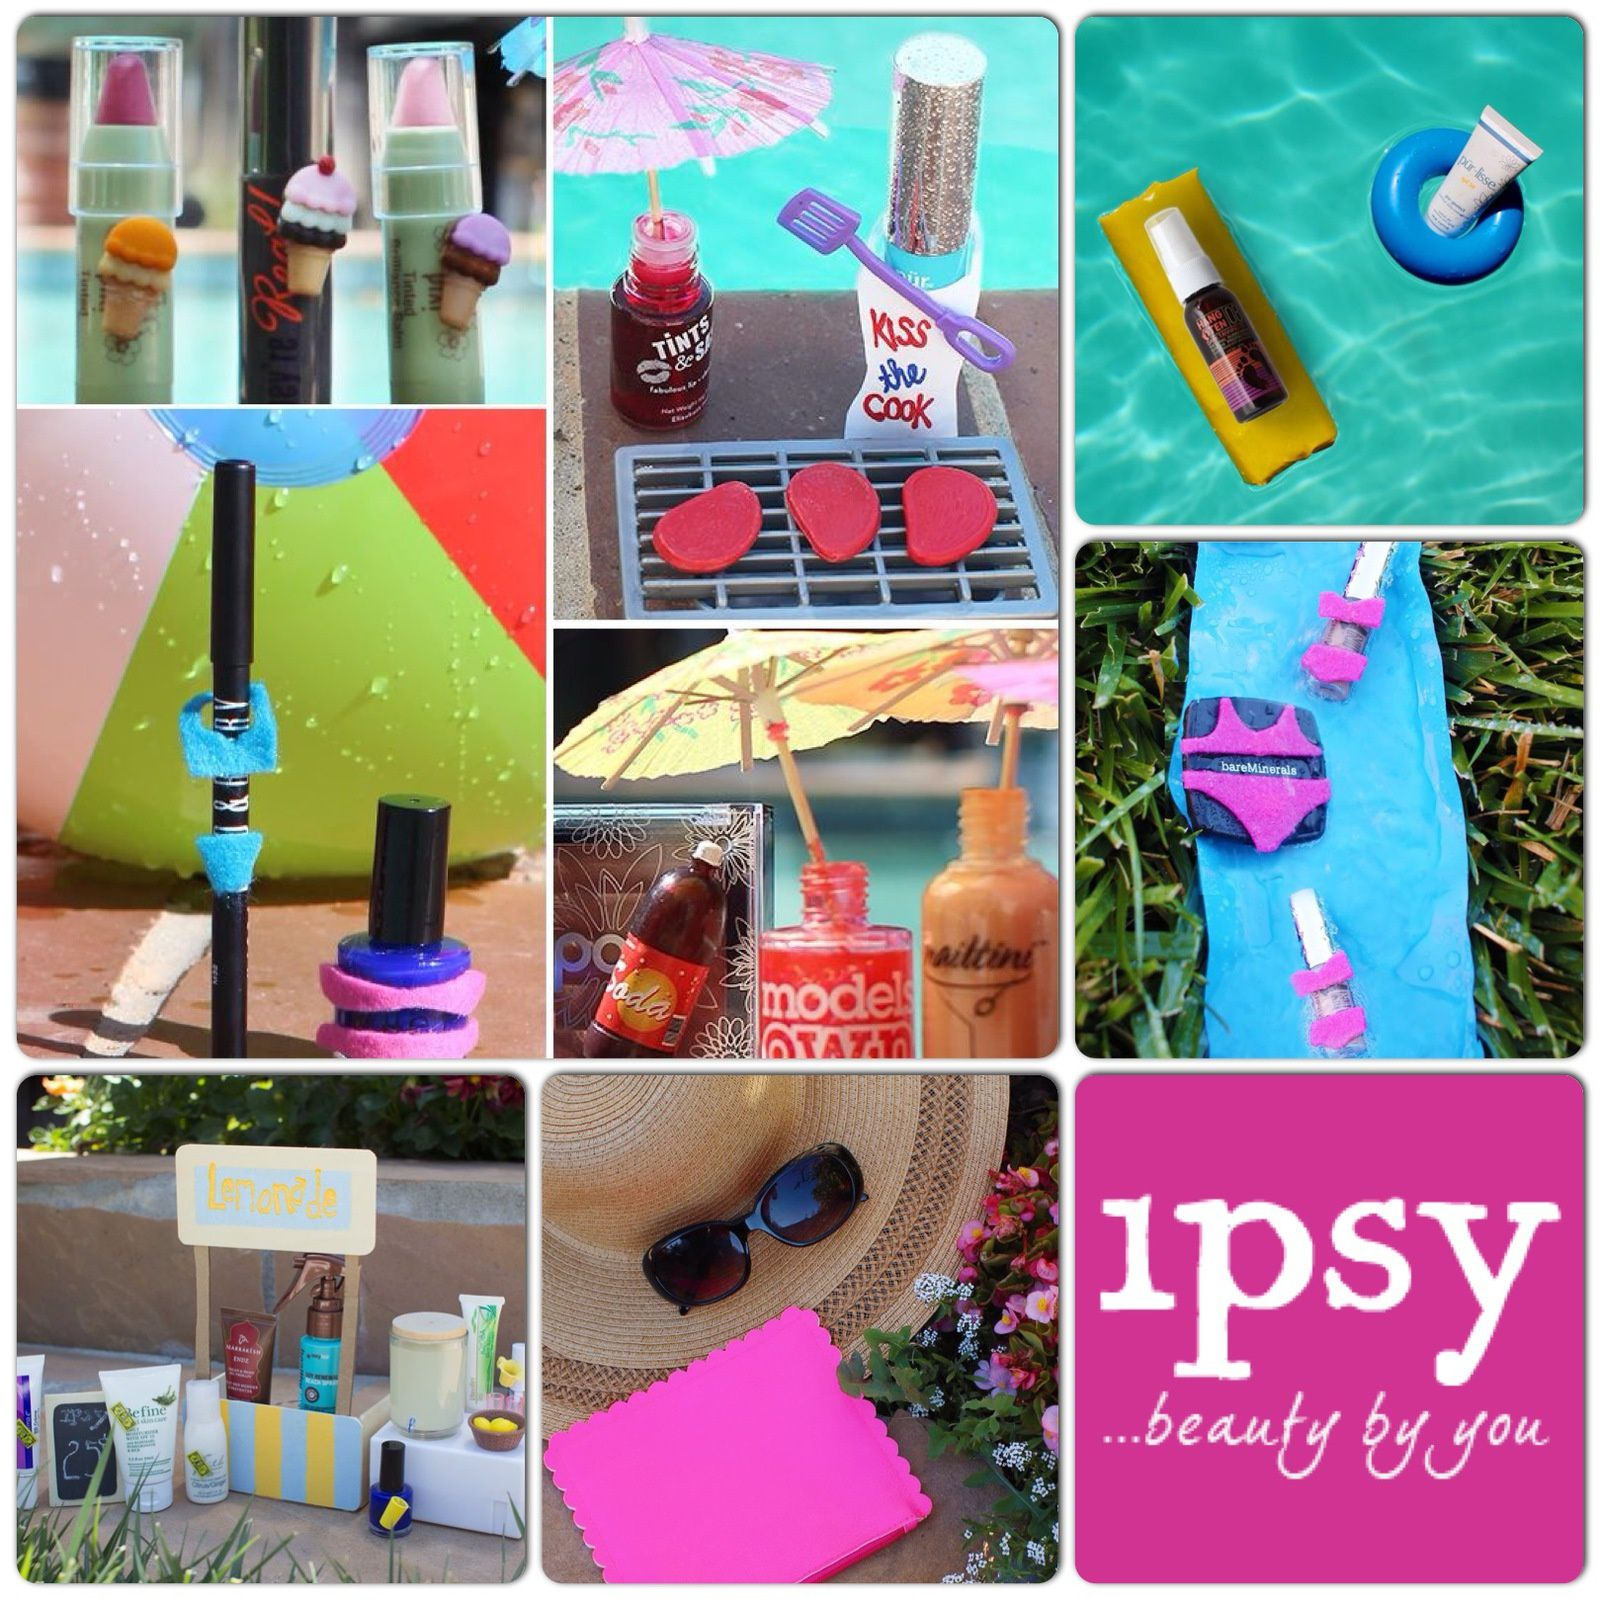 My Glam Bag & Ipsy July 2014 Sneak Peeks